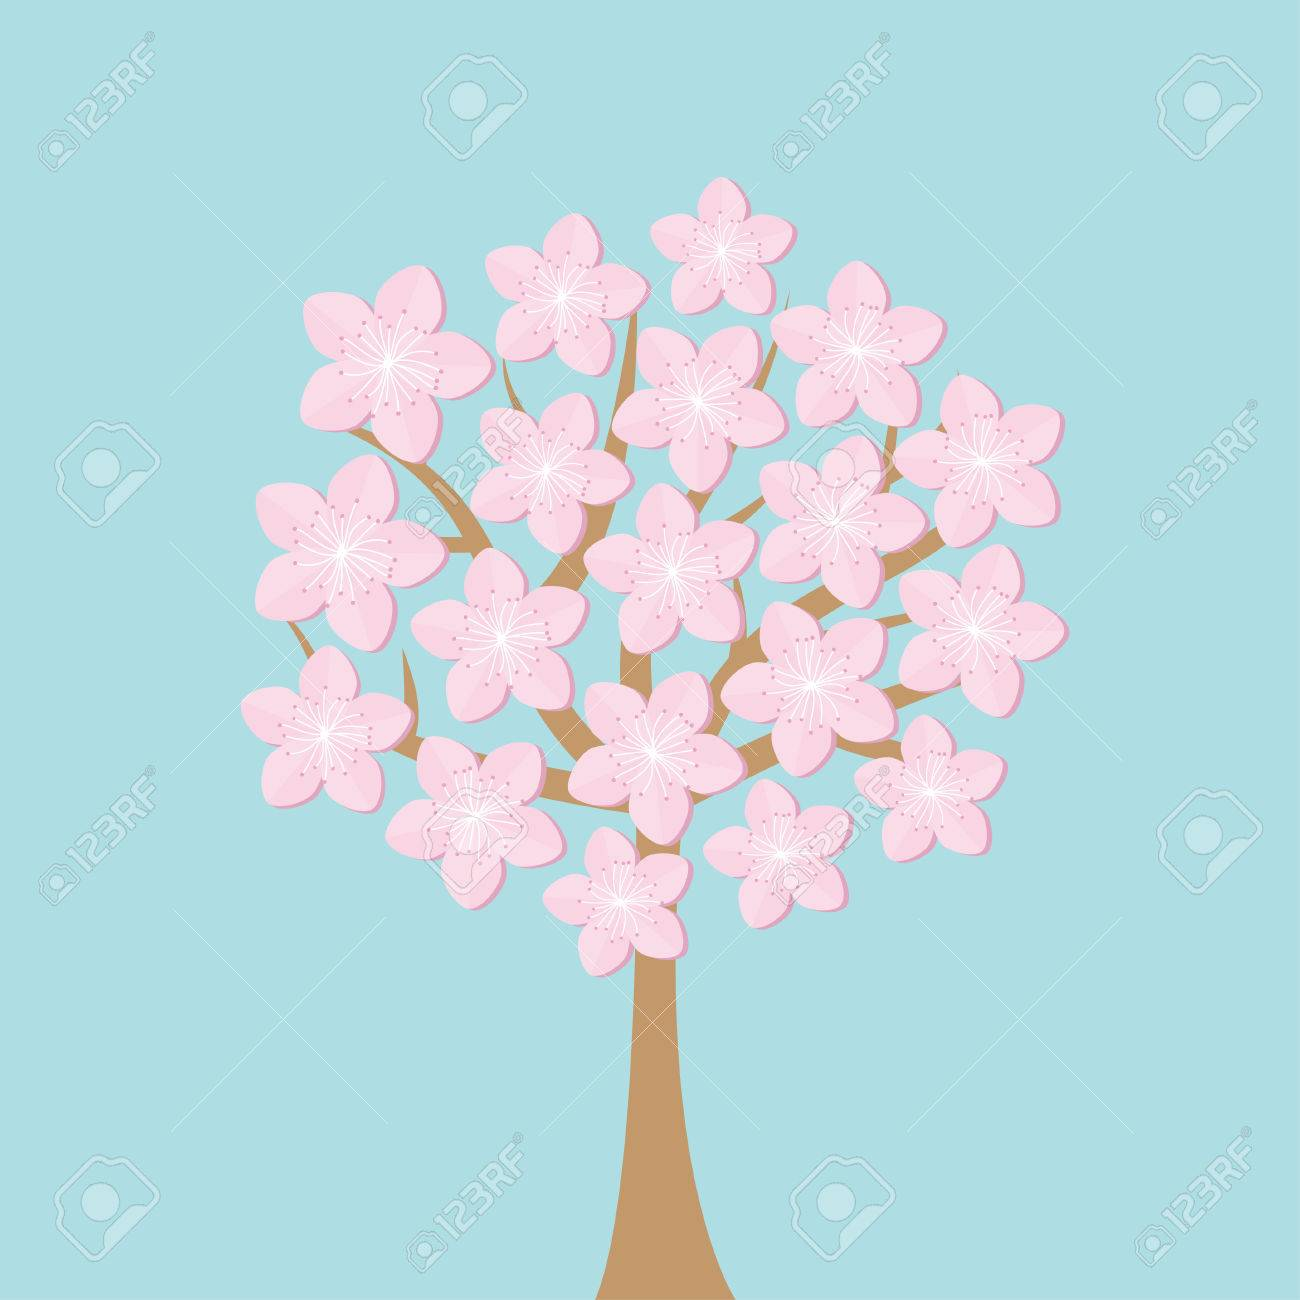 sakura tree flowers japan blooming cherry blossom set blue